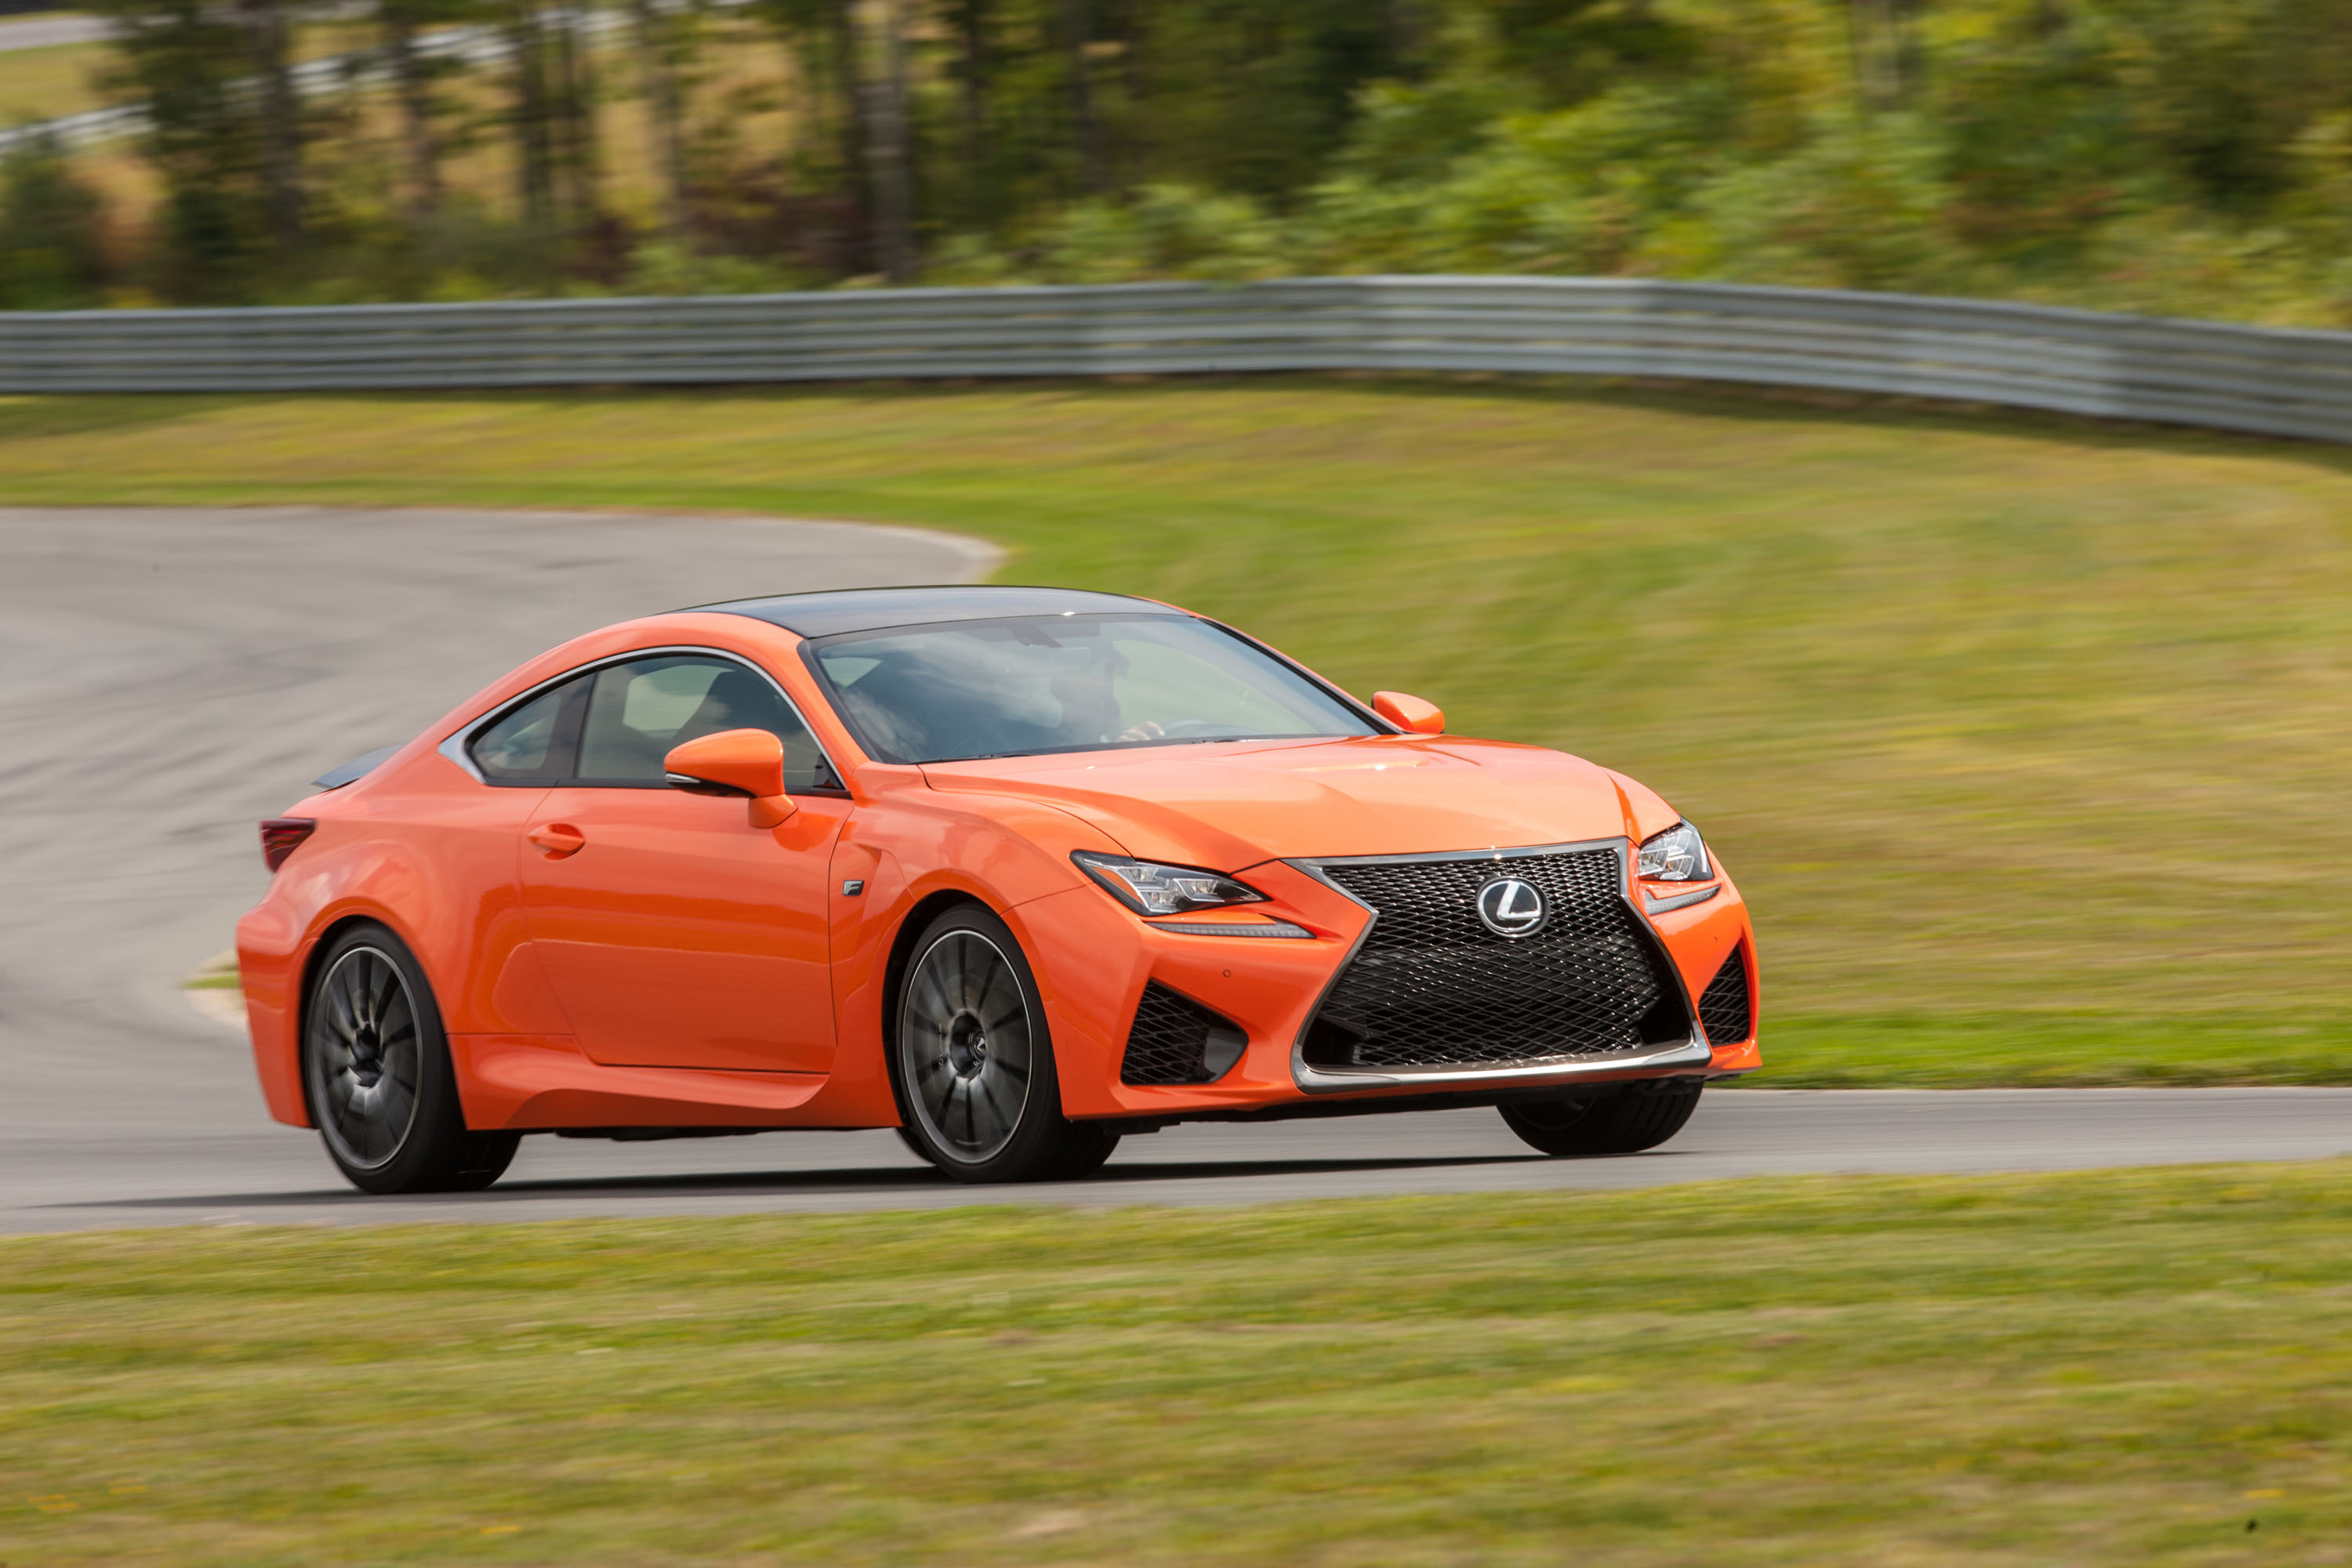 2015 Lexus RC F on track at Monticello Motor Club